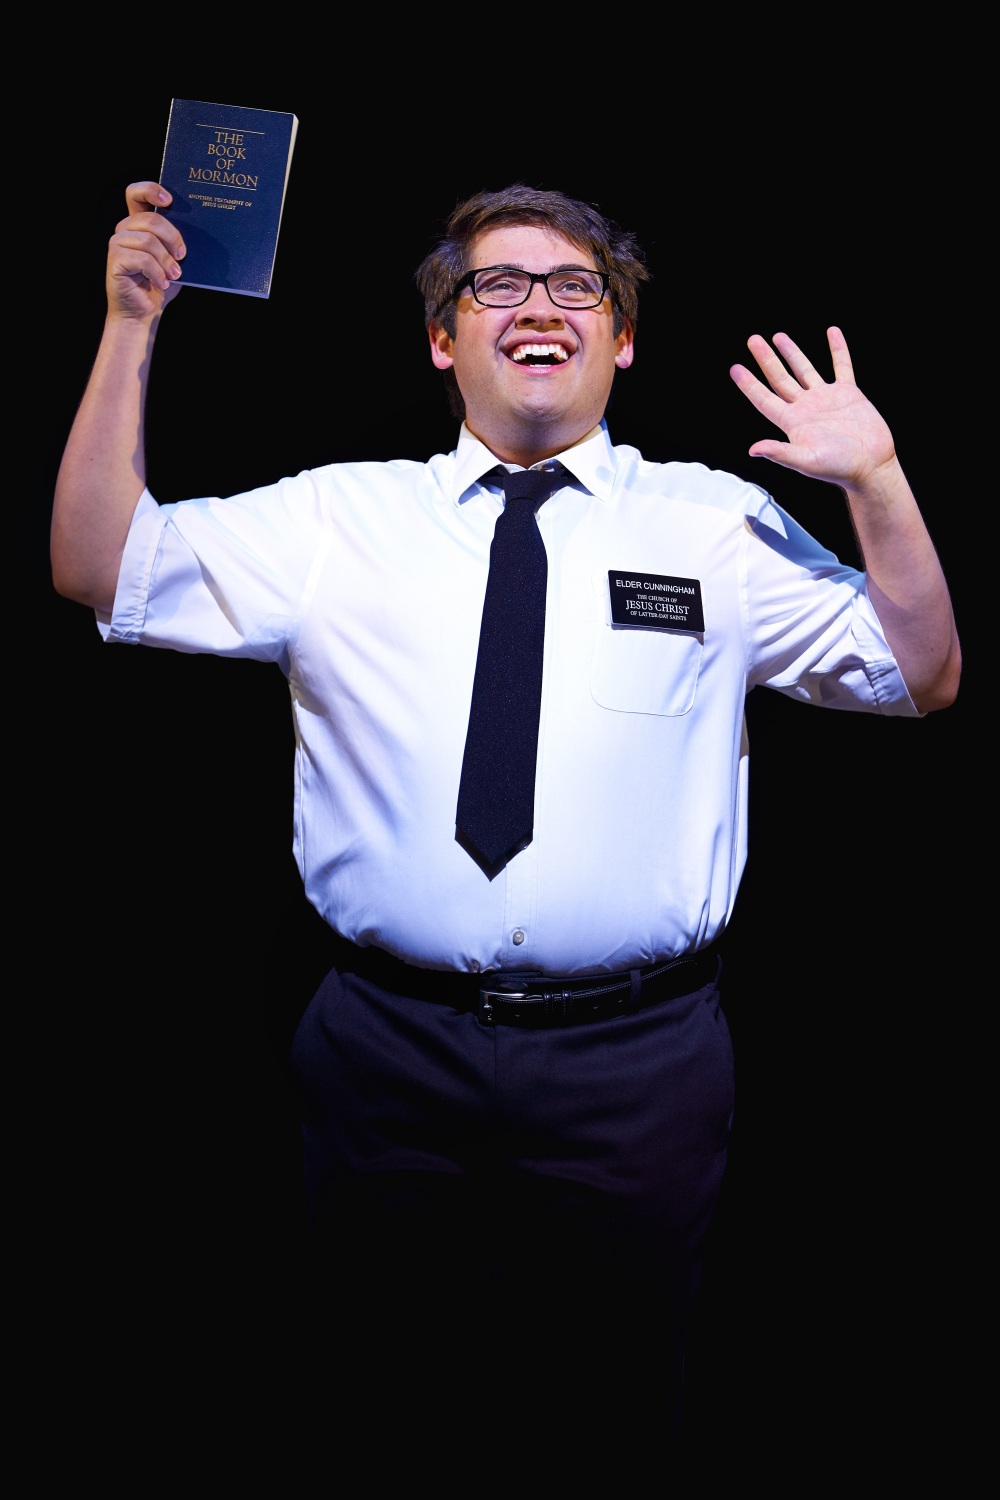 Elder Cunningham waving and holding The Book of Mormon